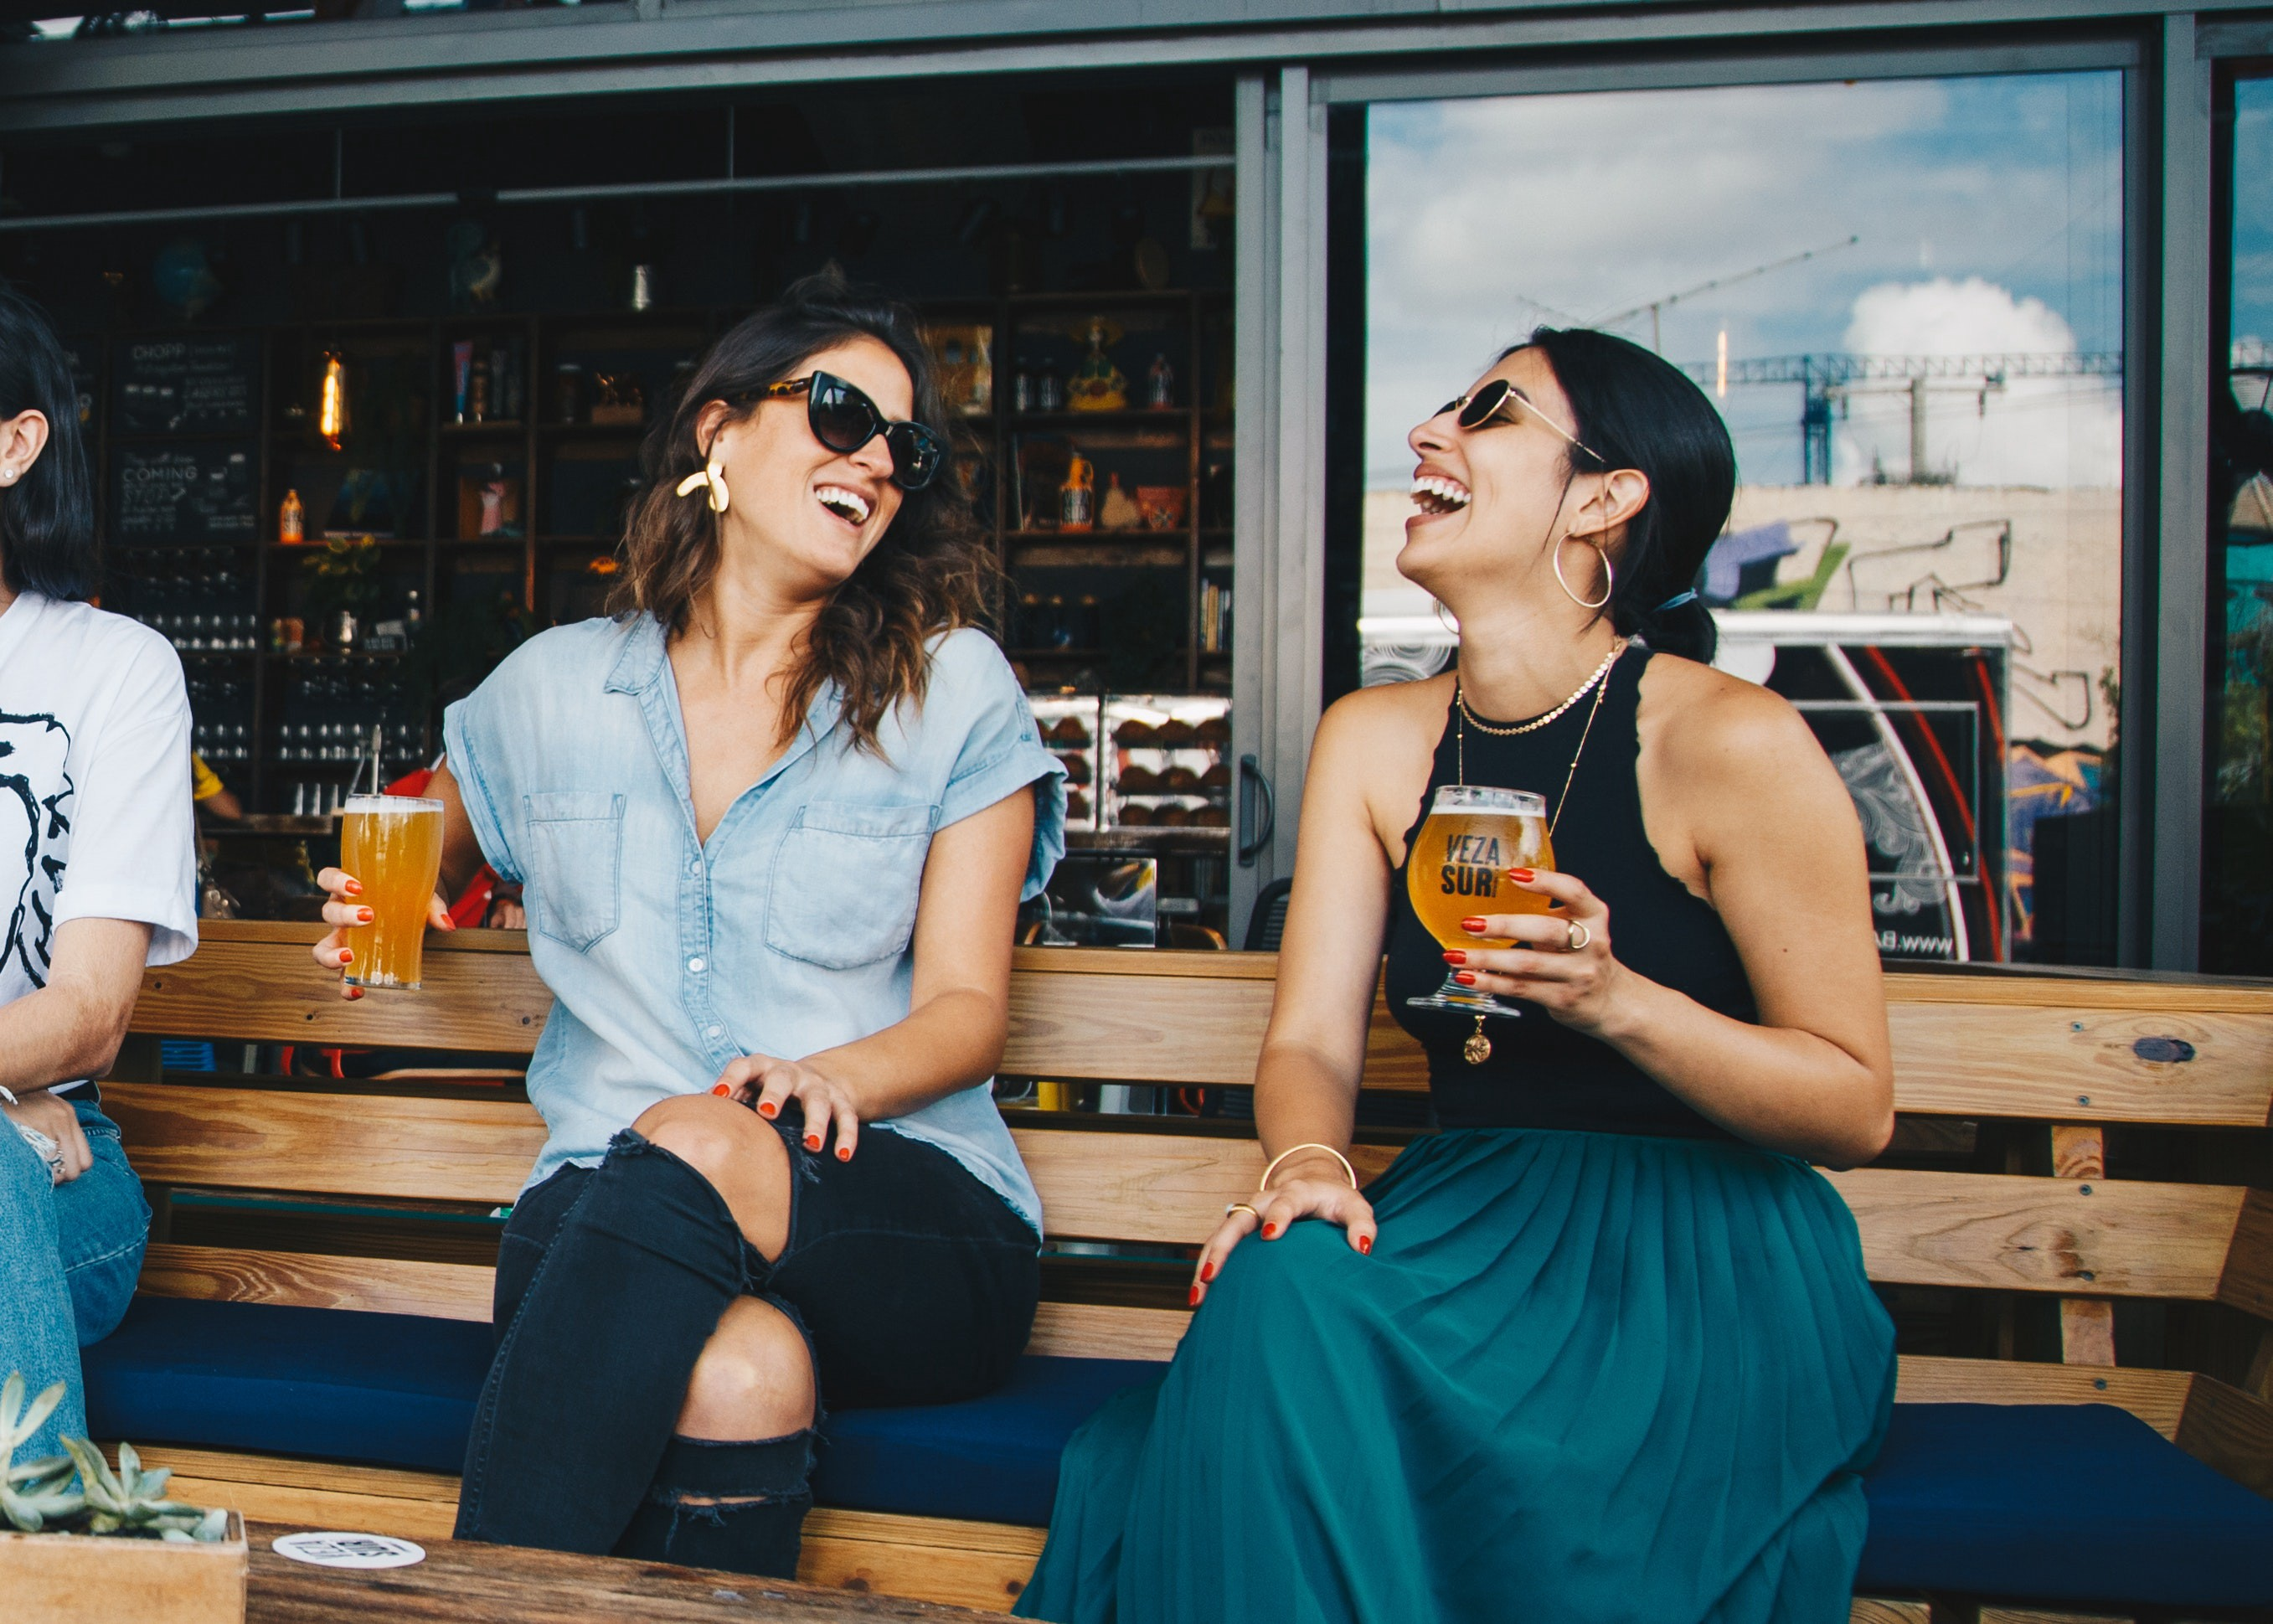 Two Smiling Women Sitting on Wooden Bench Drinking a Beer